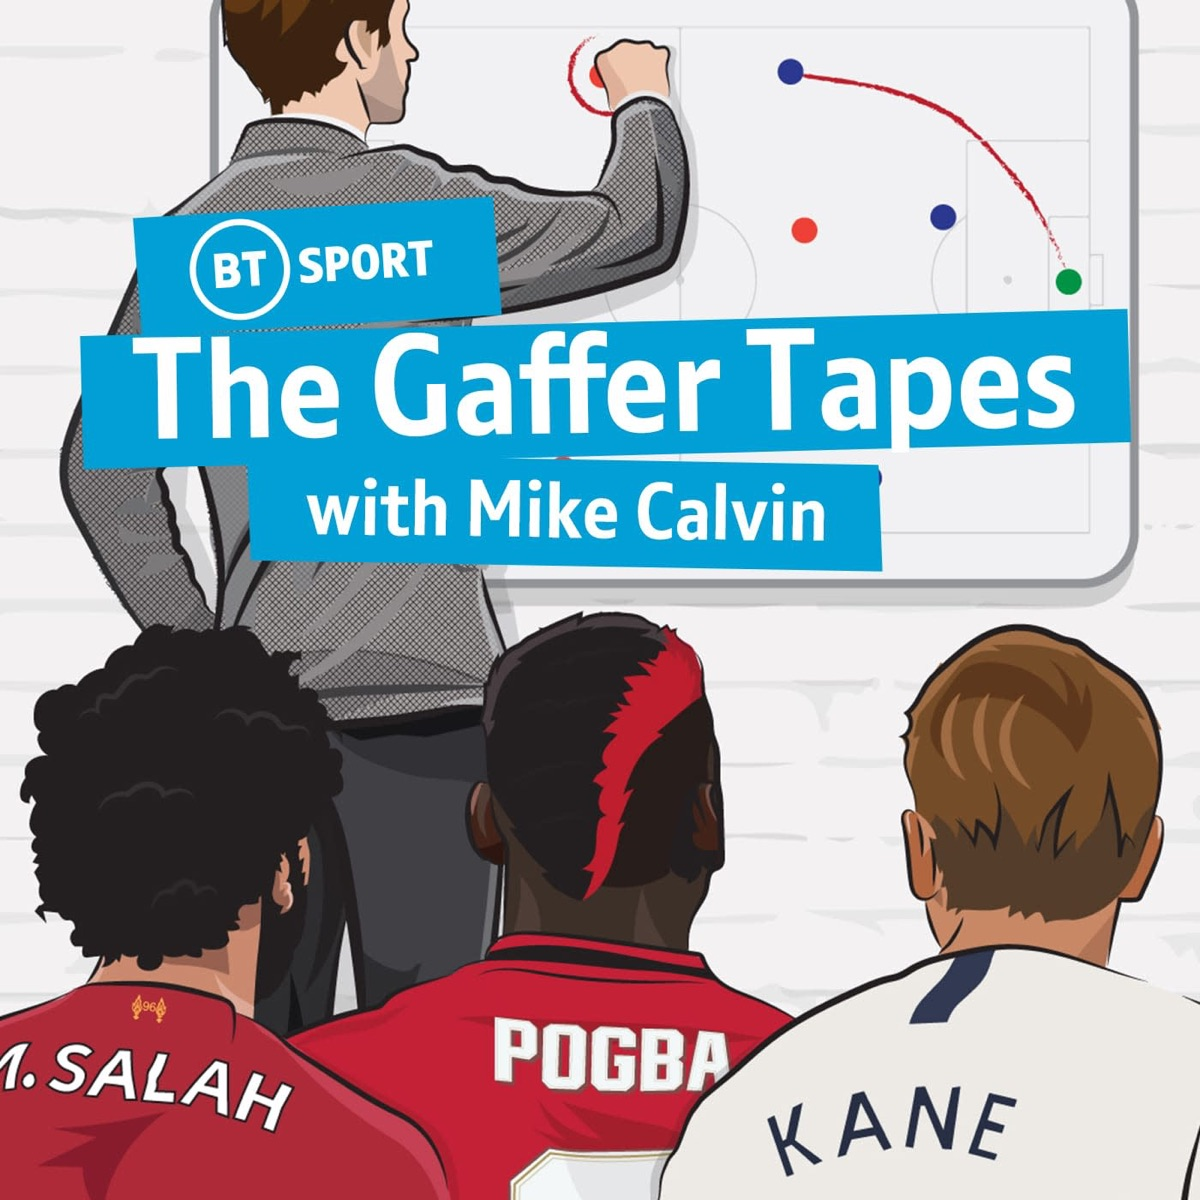 The Gaffer Tapes